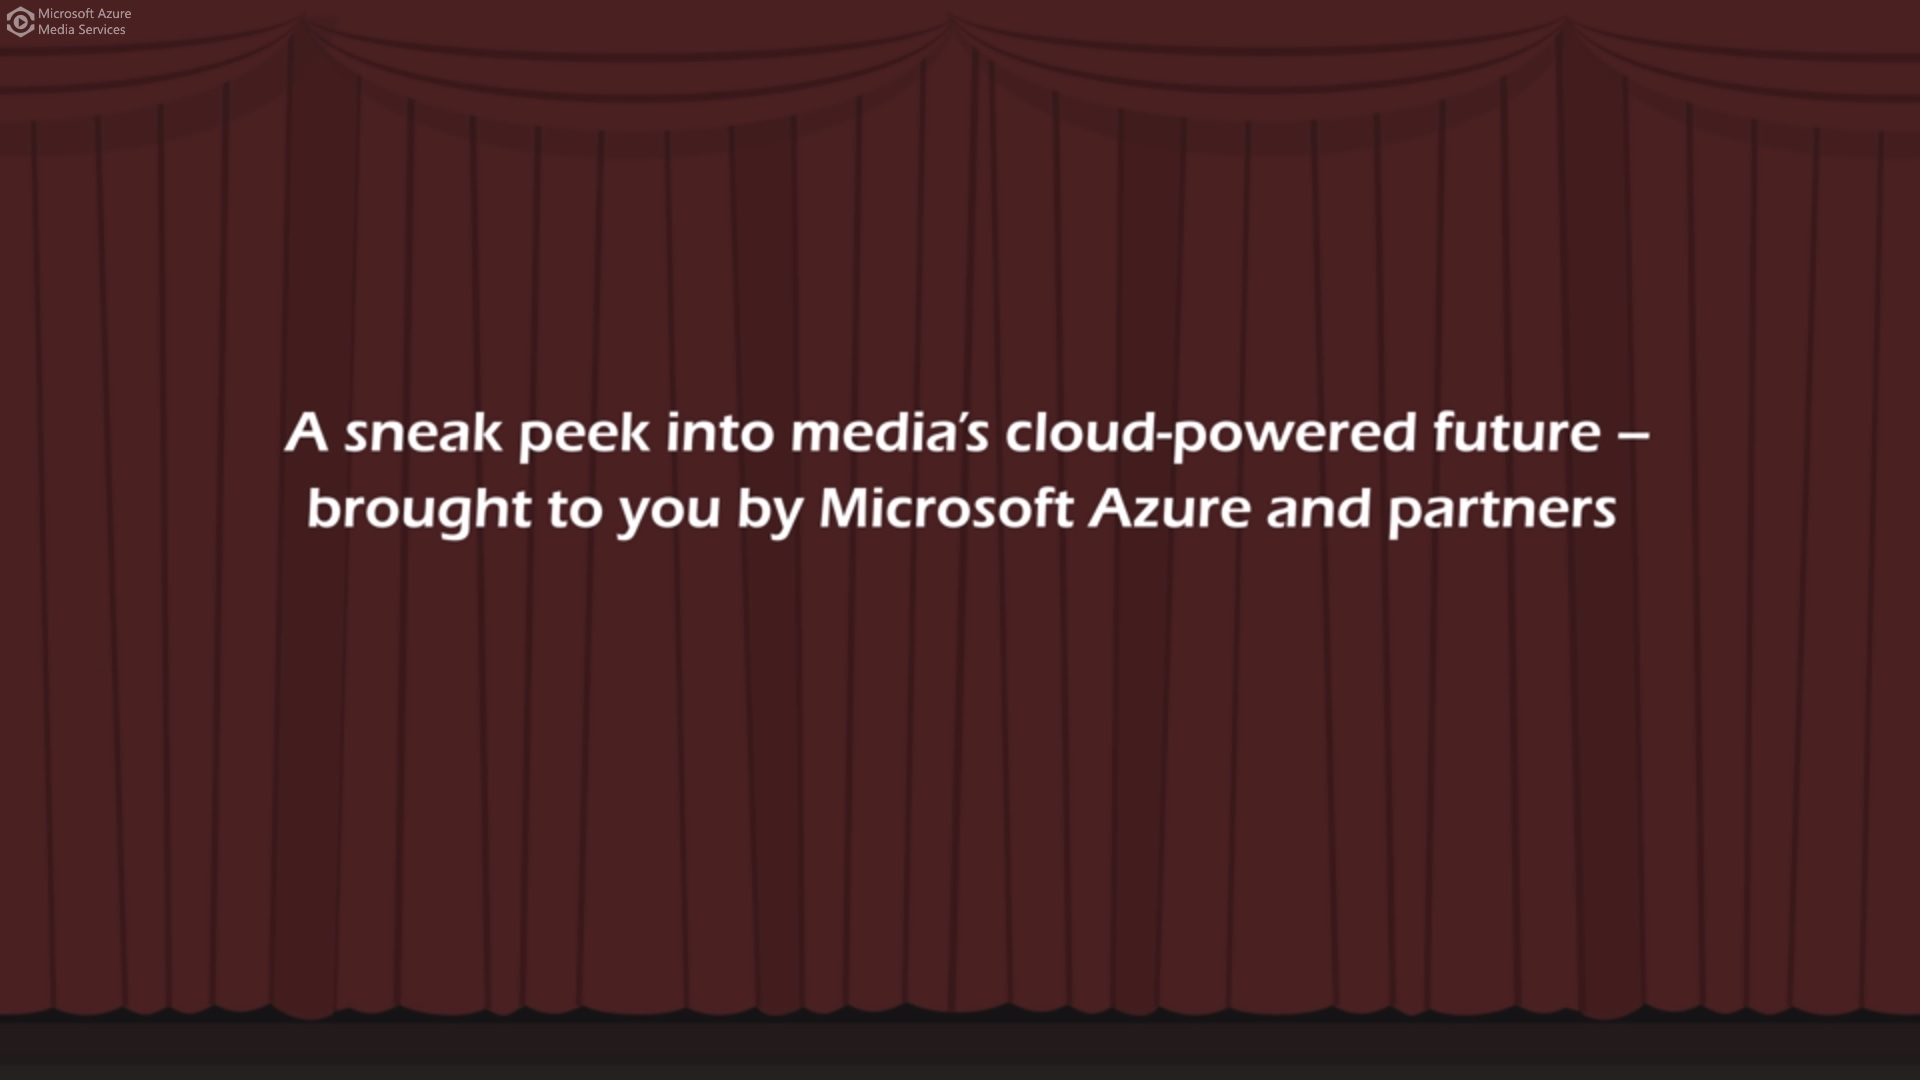 How Azure is innovating the Media & Entertainment industry